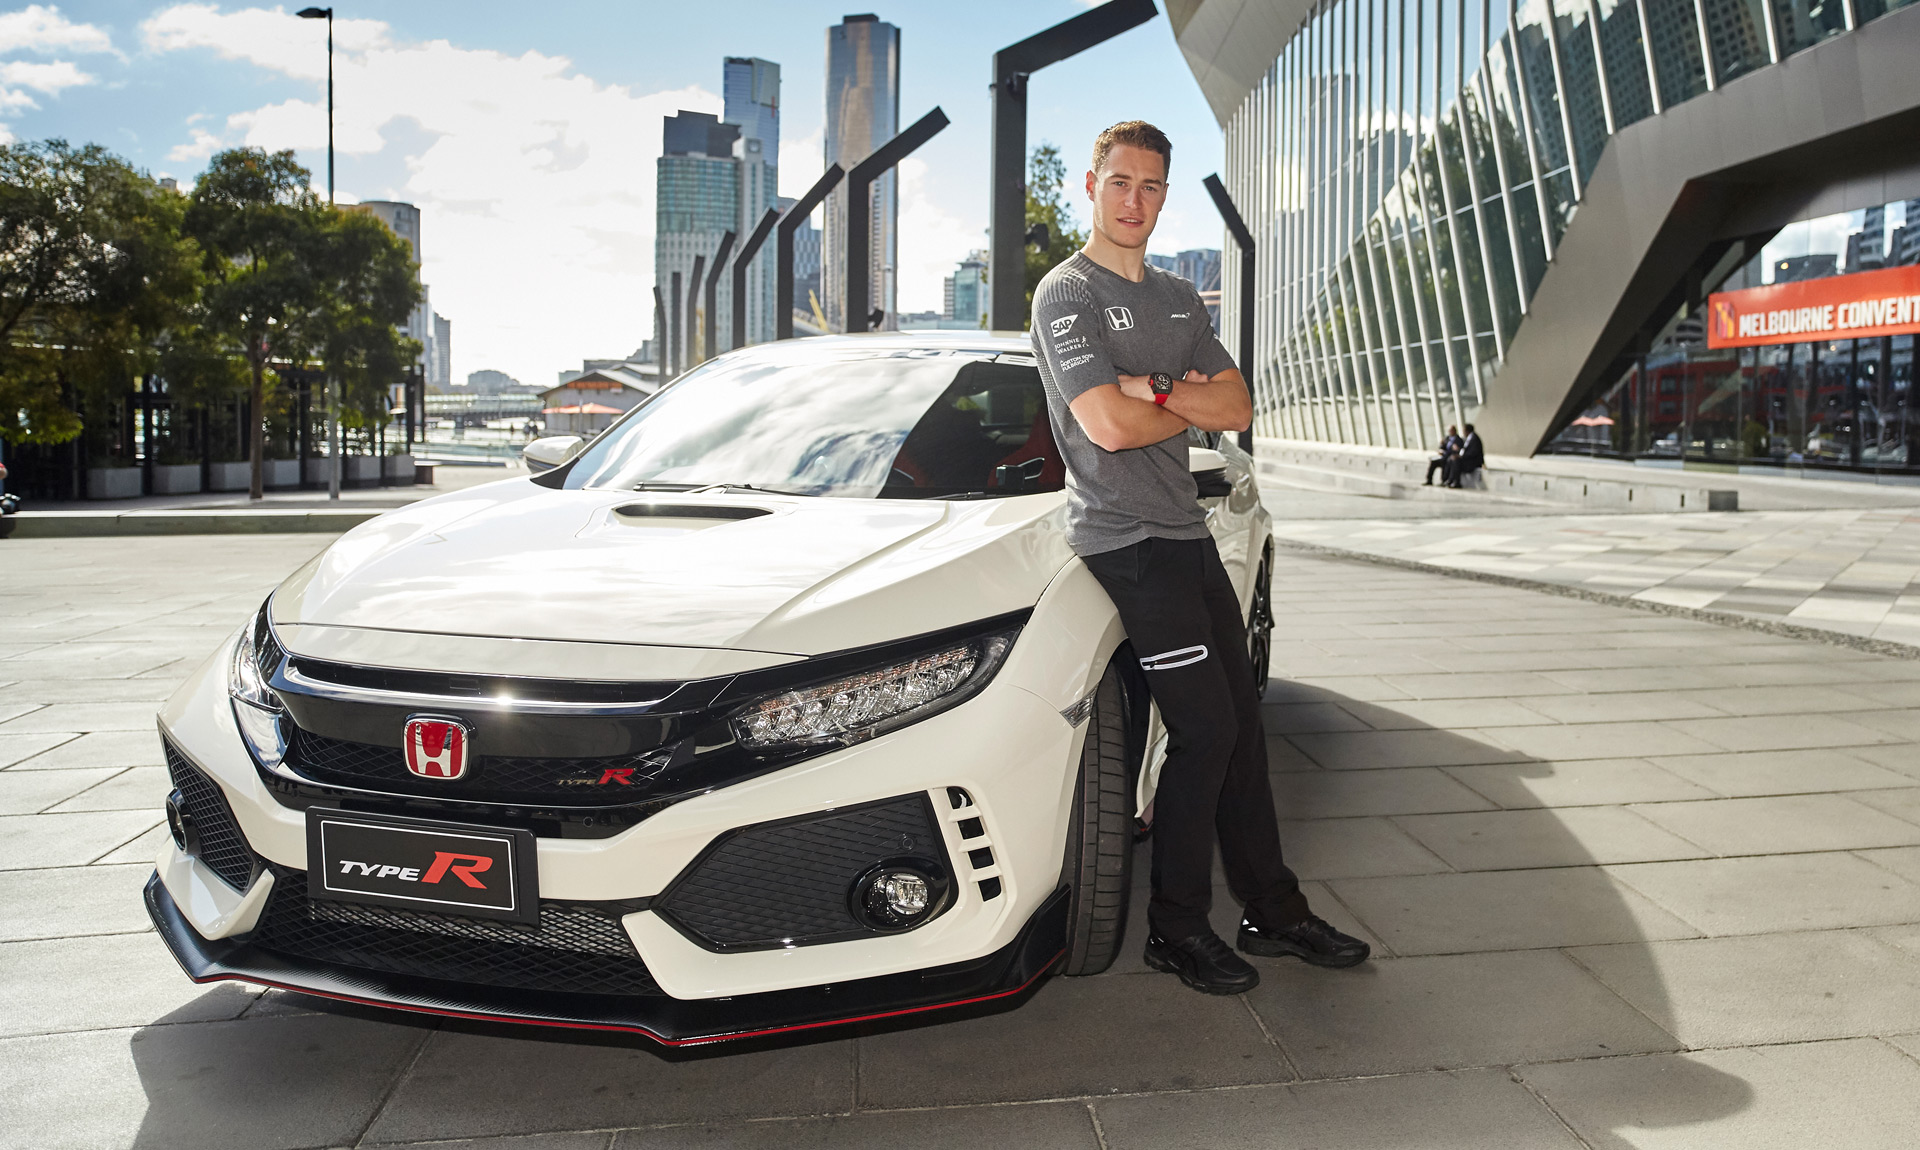 mclaren f1 driver stoffel vandoorne samples the 2017 honda civic type r. Black Bedroom Furniture Sets. Home Design Ideas